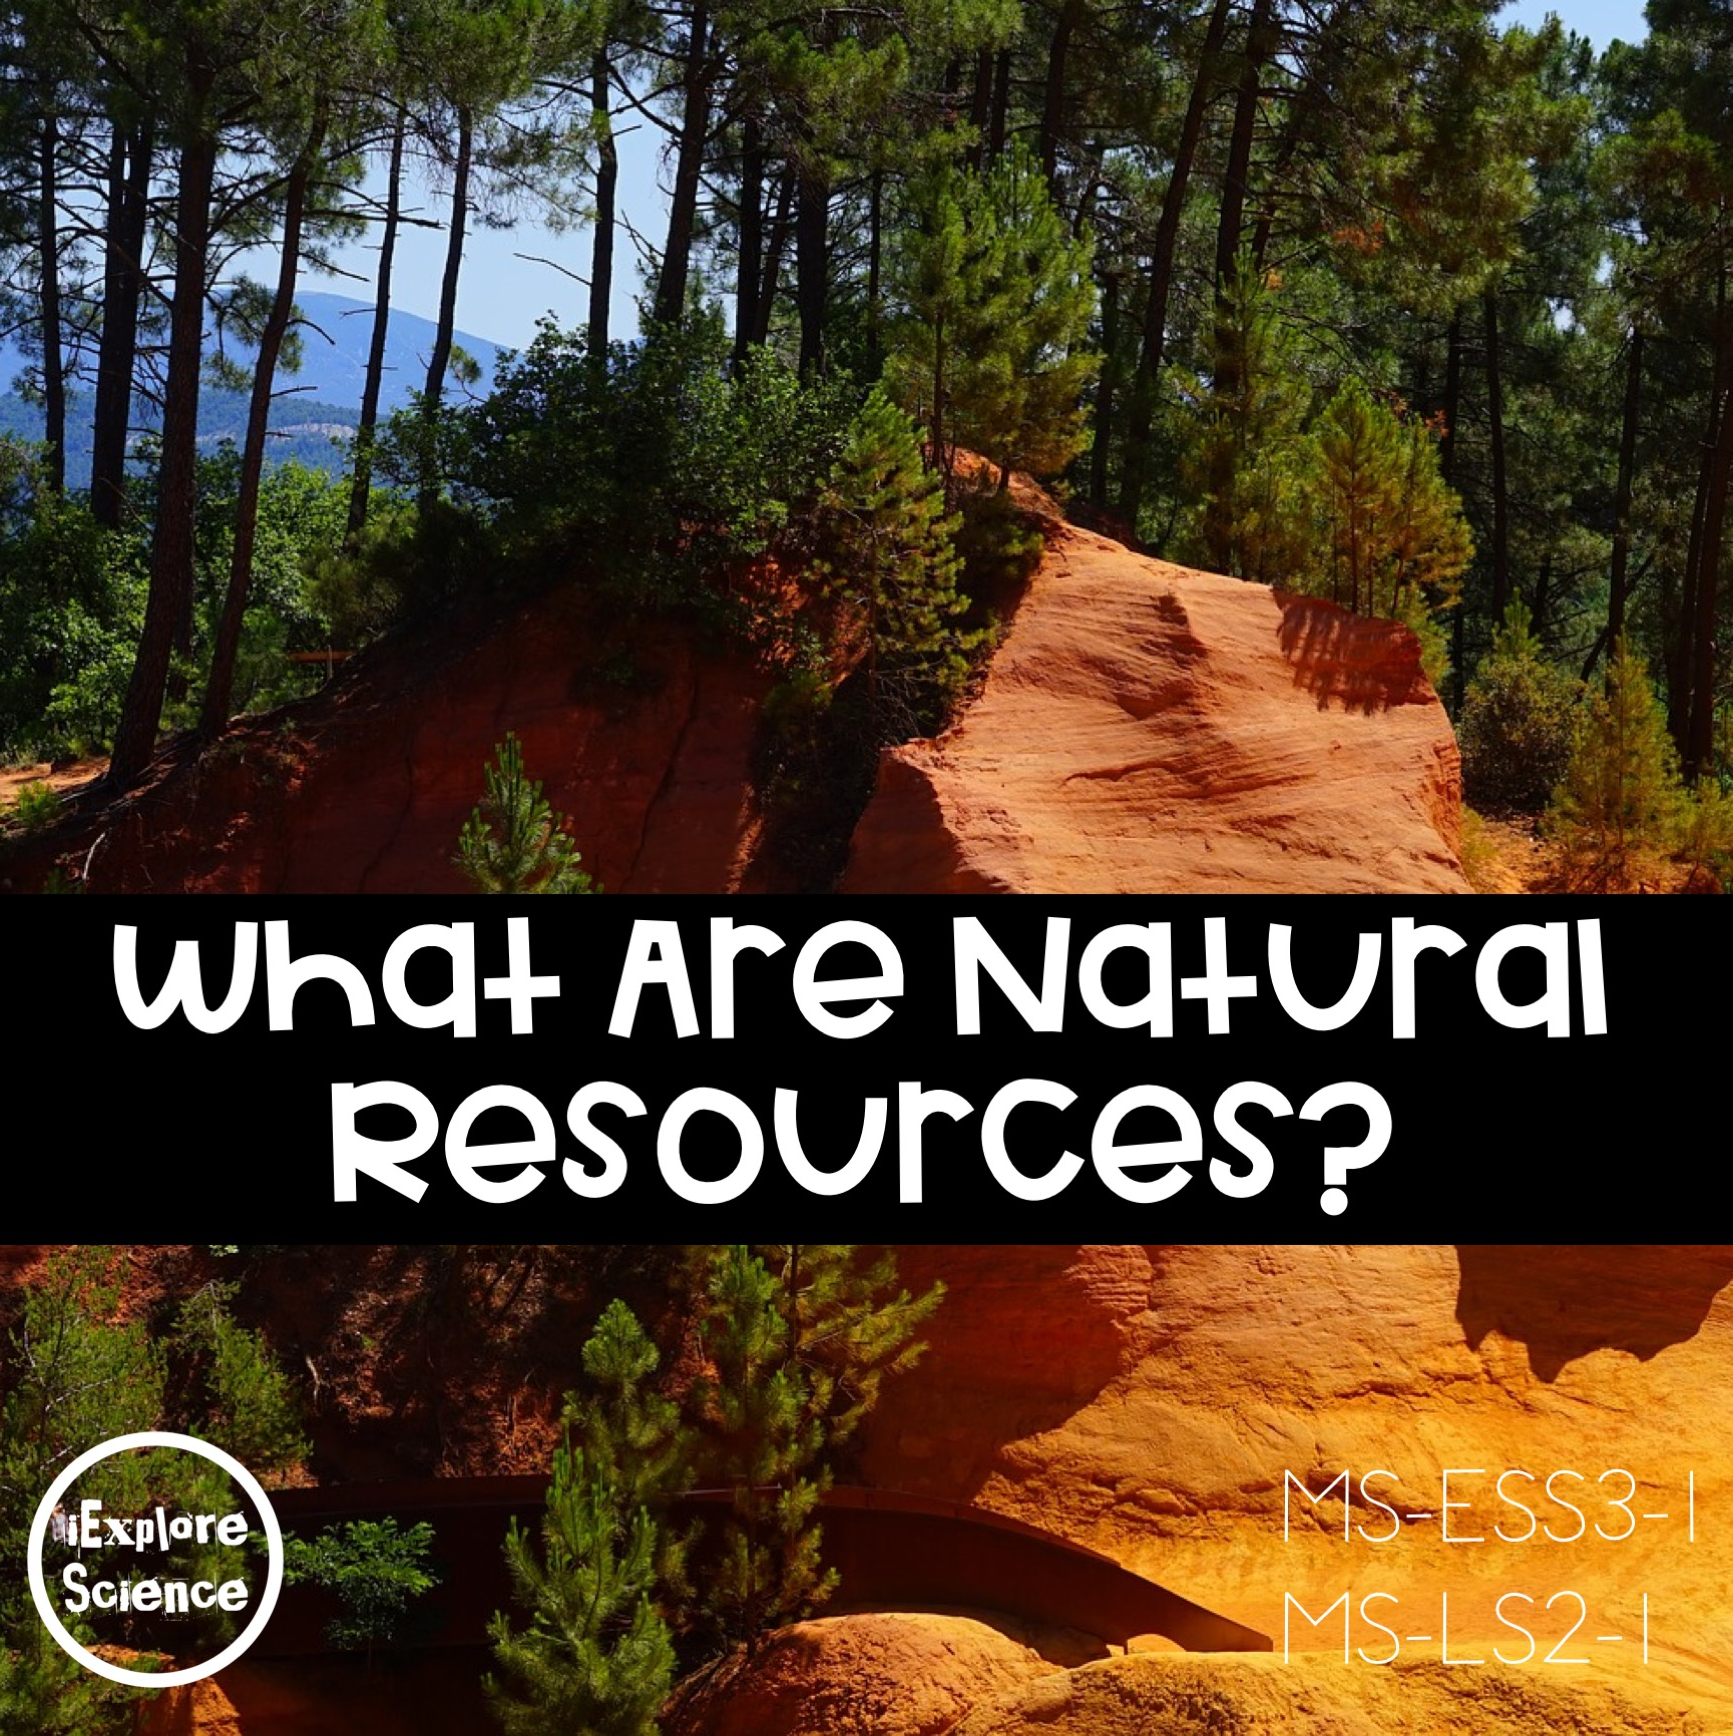 natural resources are